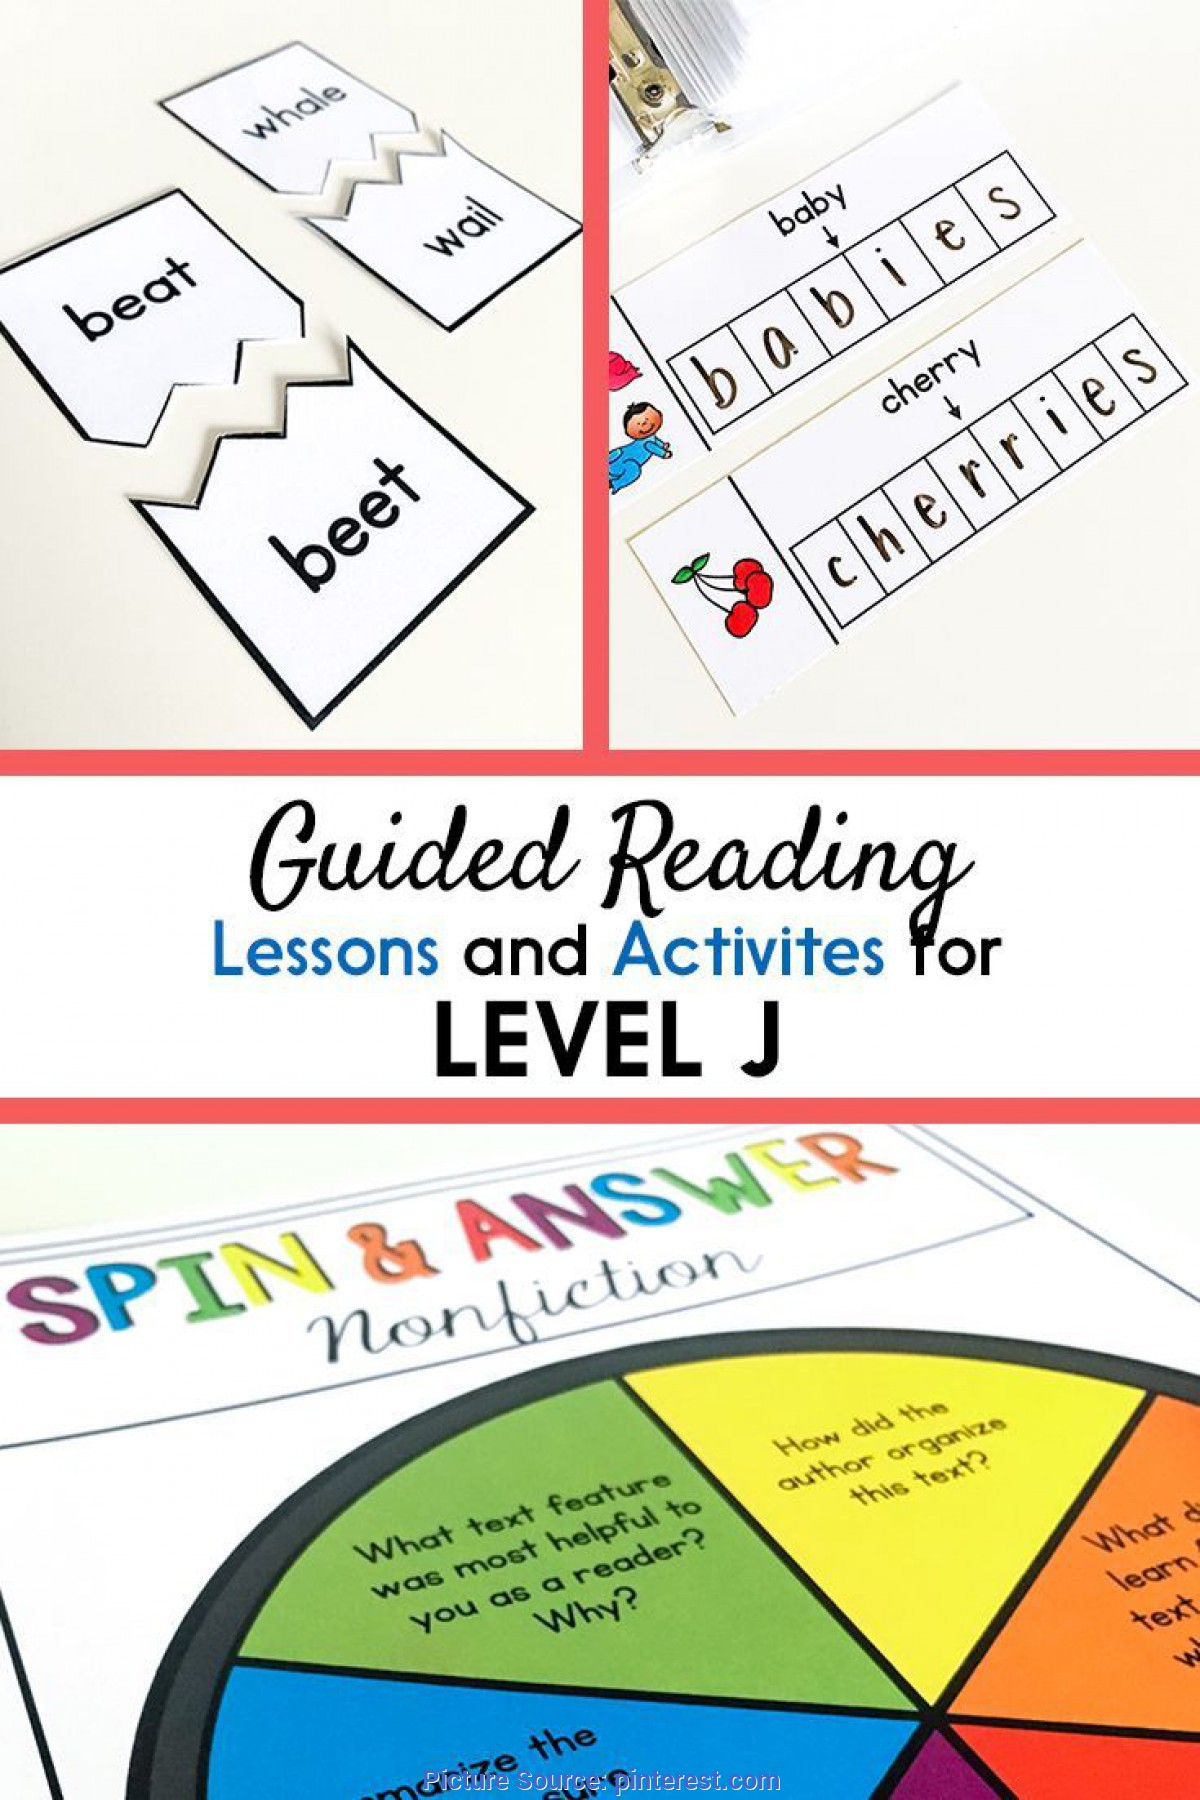 Regular Free Guided Reading Lesson Plan Template Kindergarten Guided Reading Activities And Lesson Plans For Level J | Guide